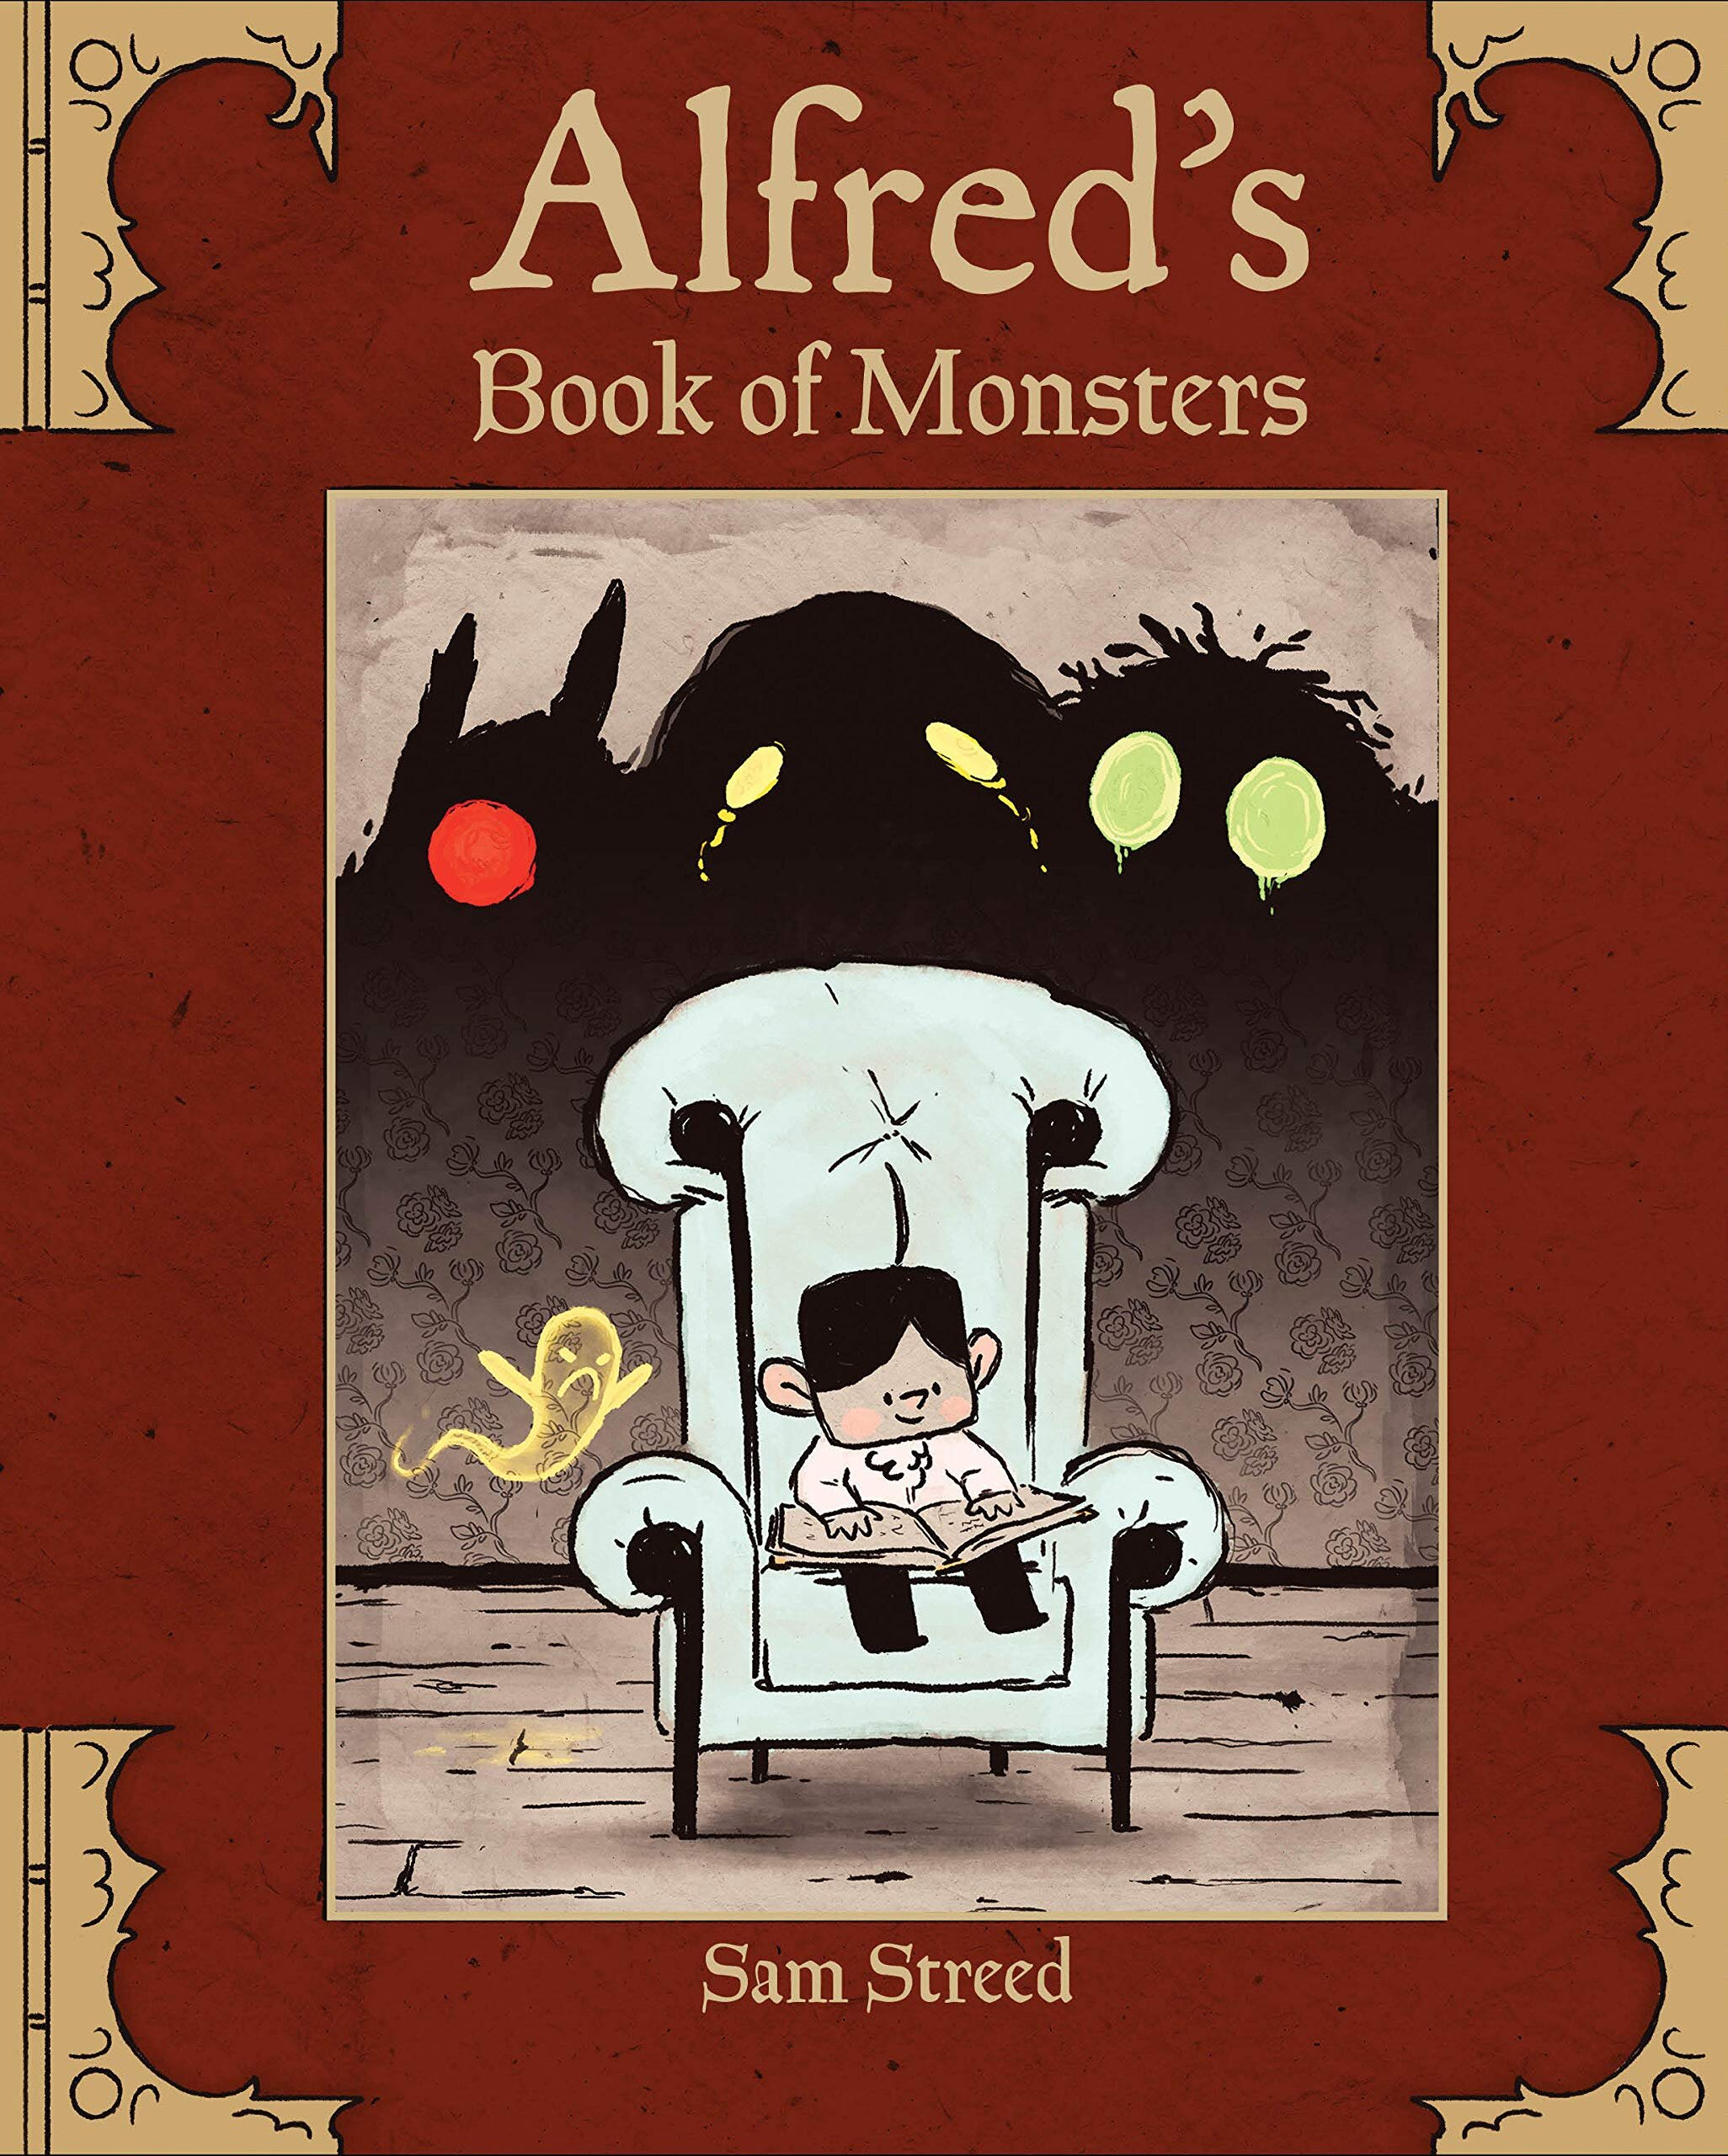 Best Halloween Picture Books of 2019 - Alfred's Book of Monsters.jpg